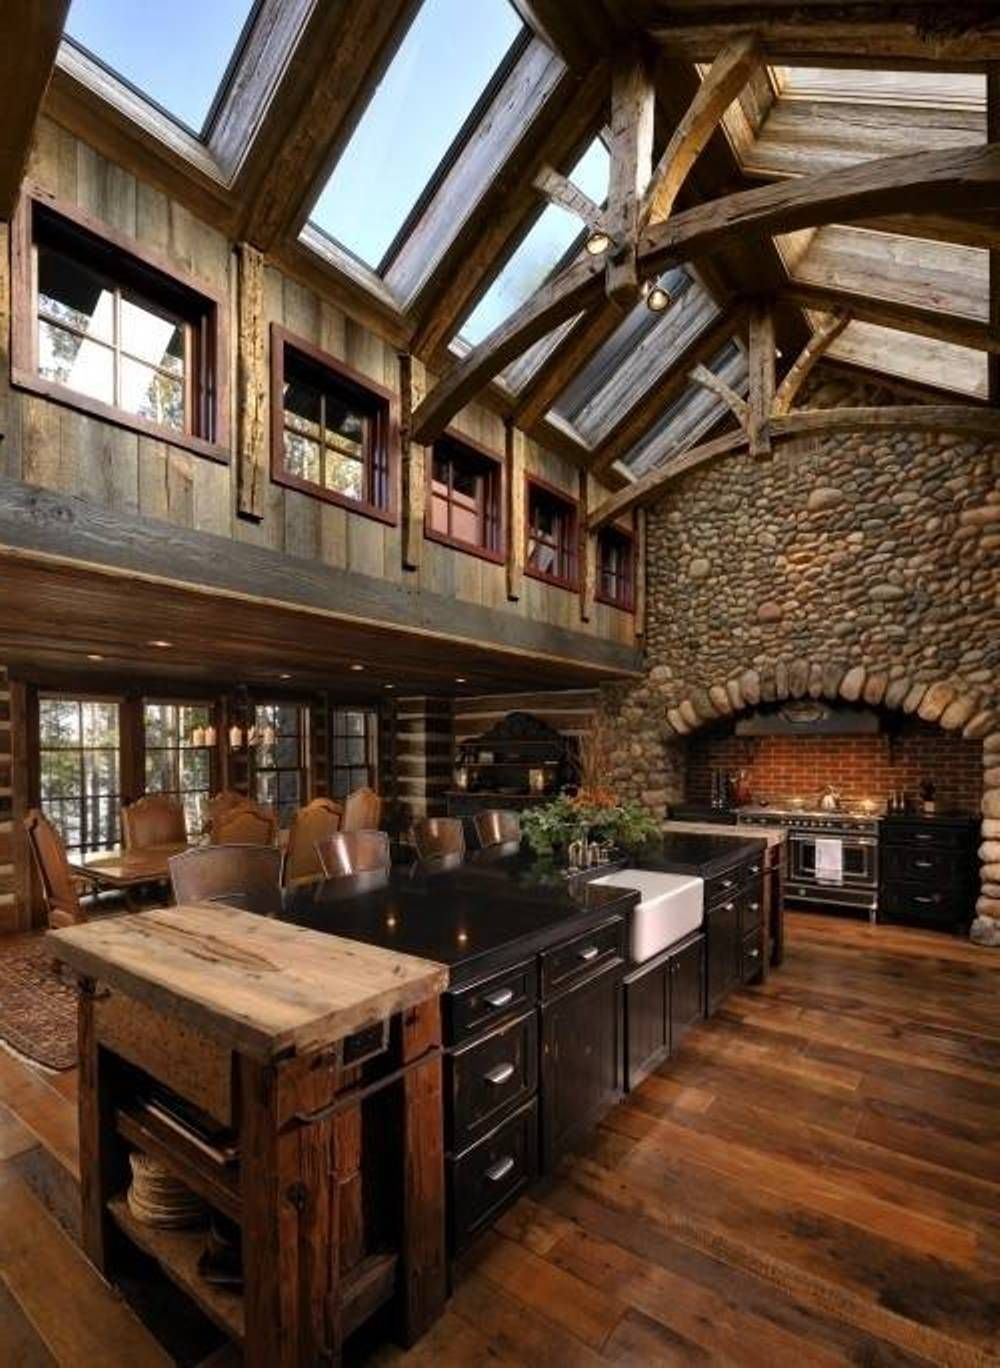 99+ Elegant Rustic Kitchen Design Ideas